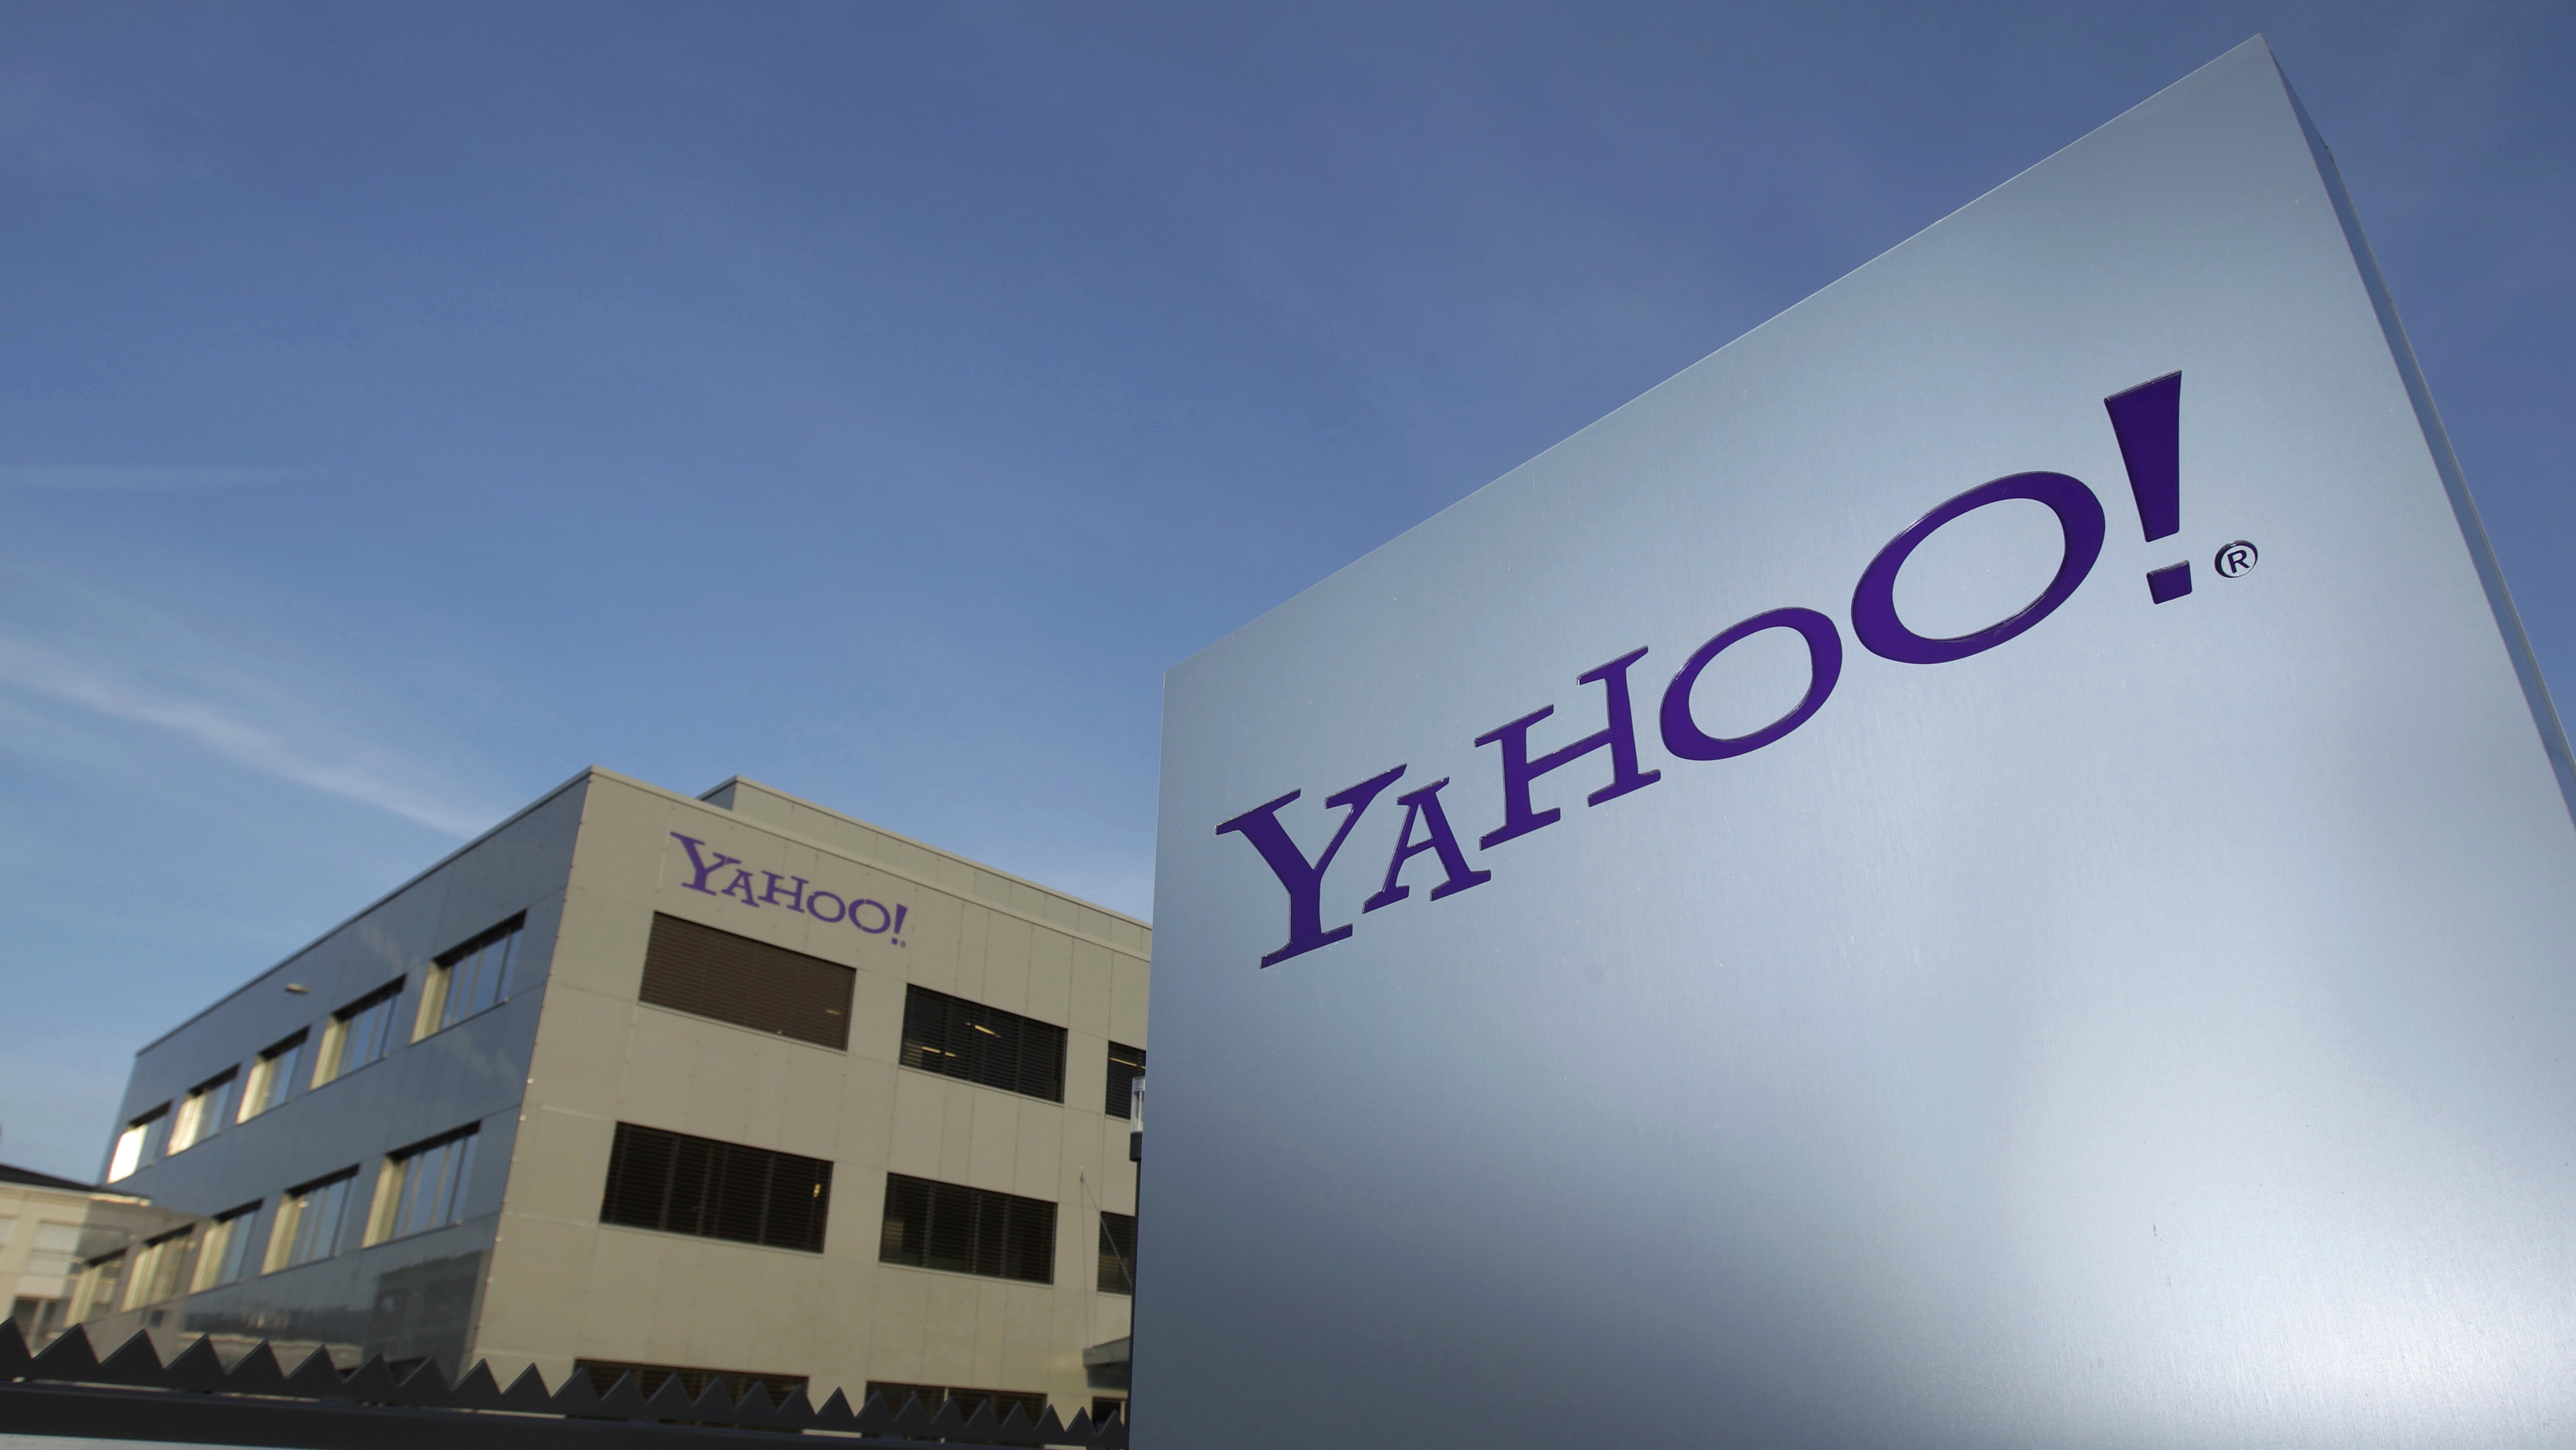 A Yahoo logo is pictured in front of a building in Rolle, 30 km (19 miles) east of Geneva, in this file picture taken December 12, 2012. Yahoo! Inc is shifting its main European tax base to Ireland from Switzerland, a Reuters examination of company statements and accounts shows, as pressure mounts on the Alpine nation to abolish some corporate tax incentives. Picture taken December 12, 2012.       REUTERS/Denis Balibouse (SWITZERLAND - Tags: BUSINESS POLITICS LOGO) - RTX18CHP